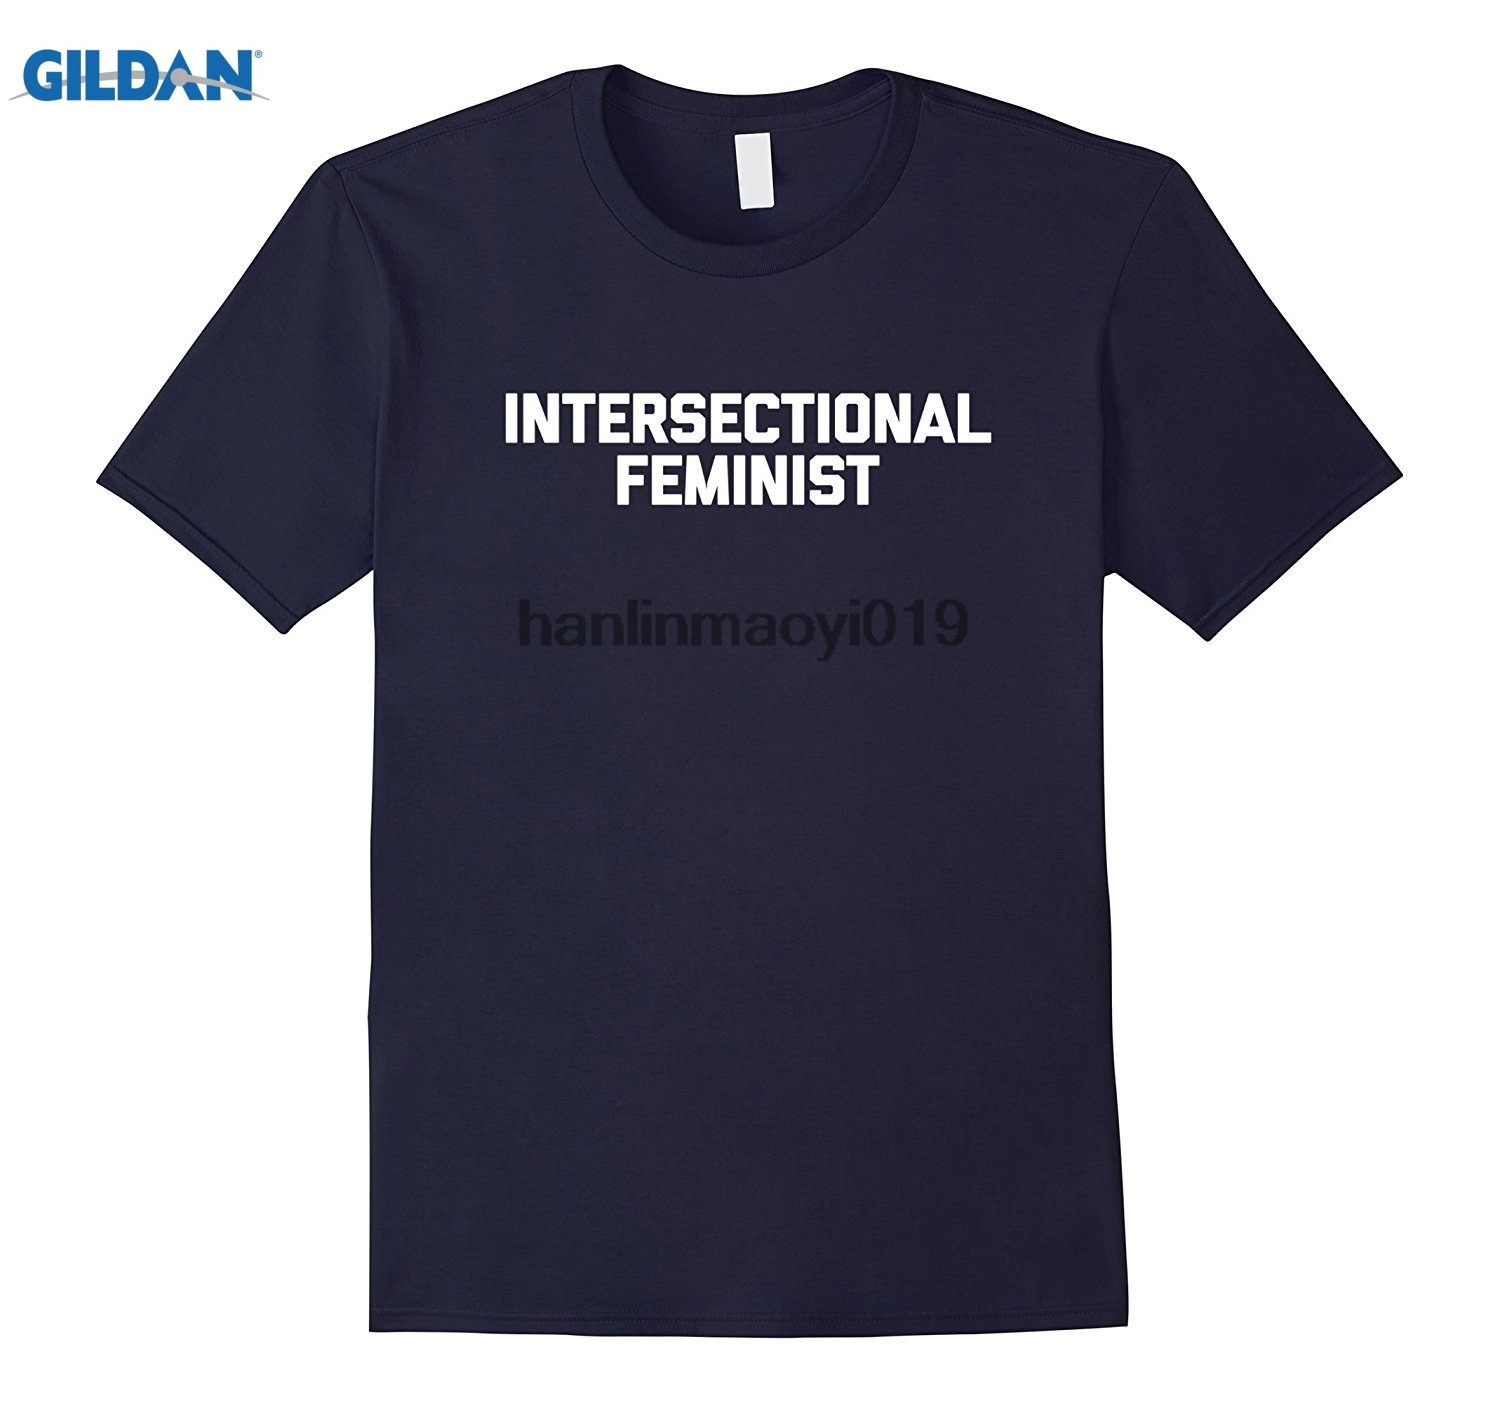 GILDAN Intersectional Feminist T-Shirt funny saying sarcastic cool